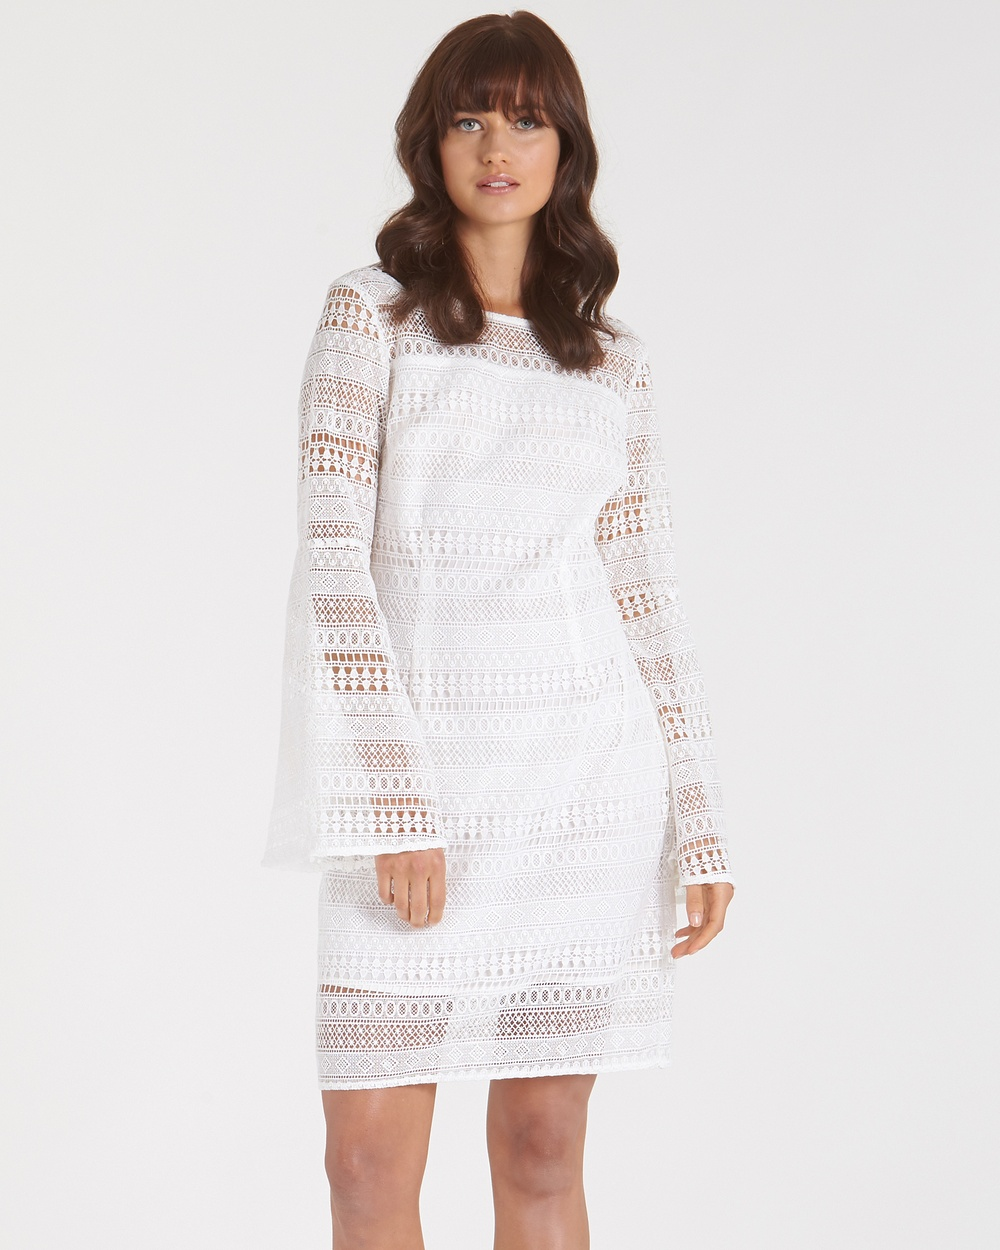 Amelius Brielle Lace Dress Dresses White Brielle Lace Dress